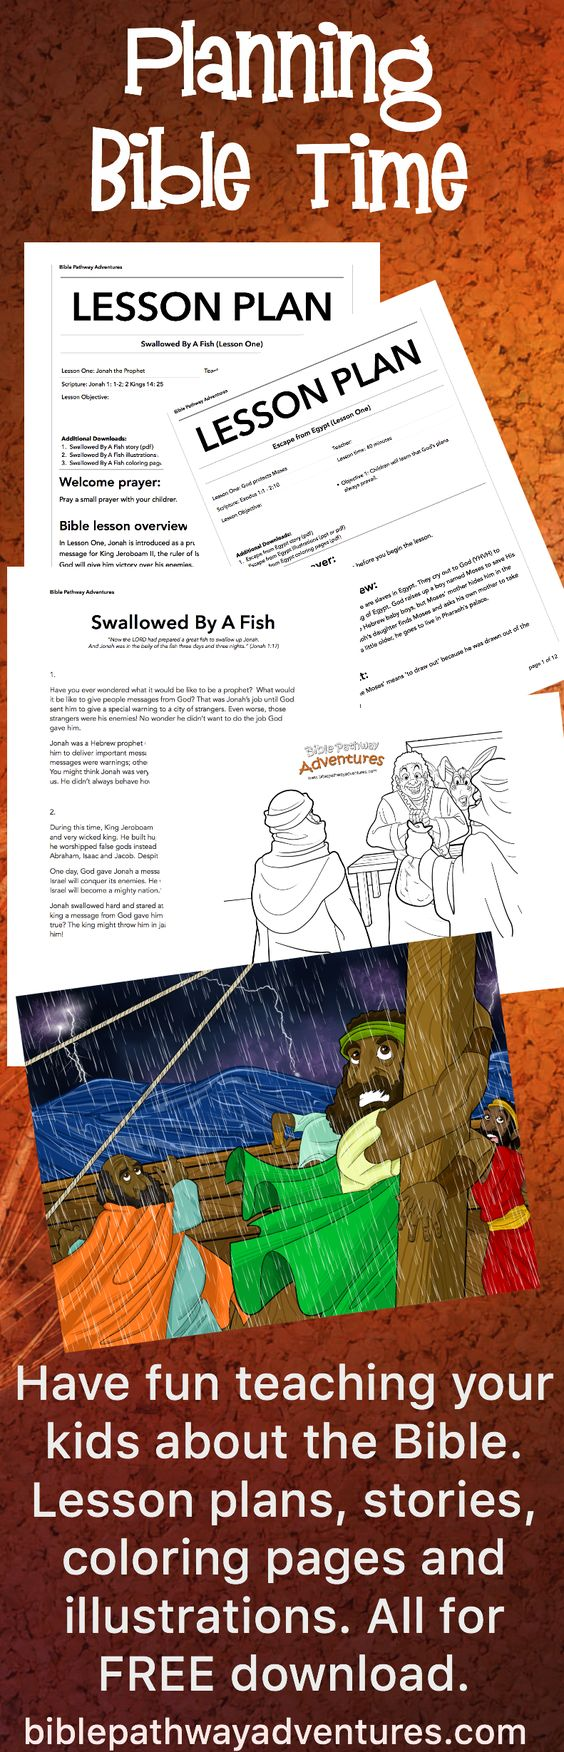 free downloads  bible story lesson plans  coloring pages